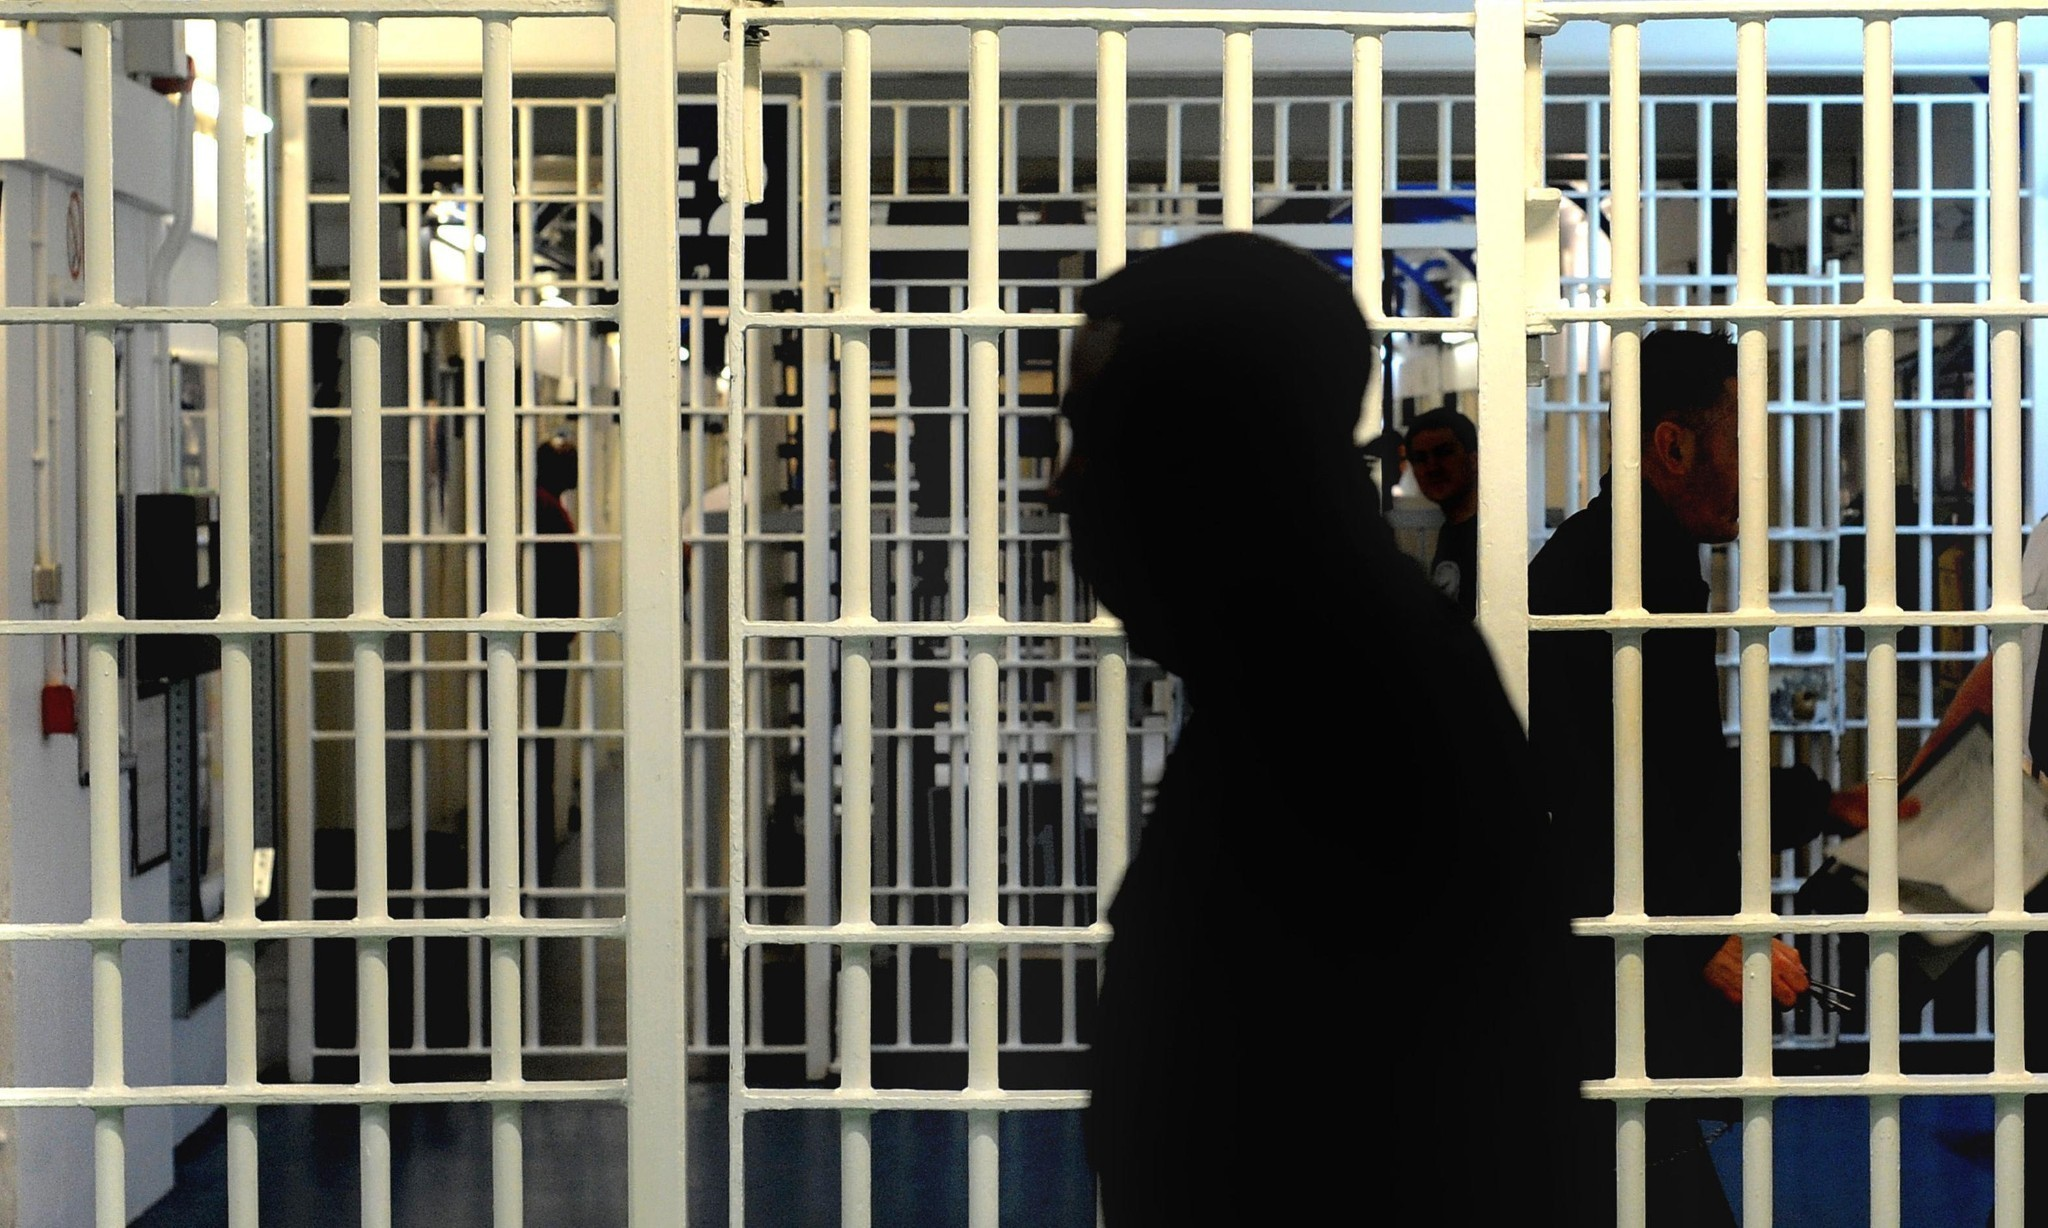 Prison psychiatrists warn care is 'at breaking point'